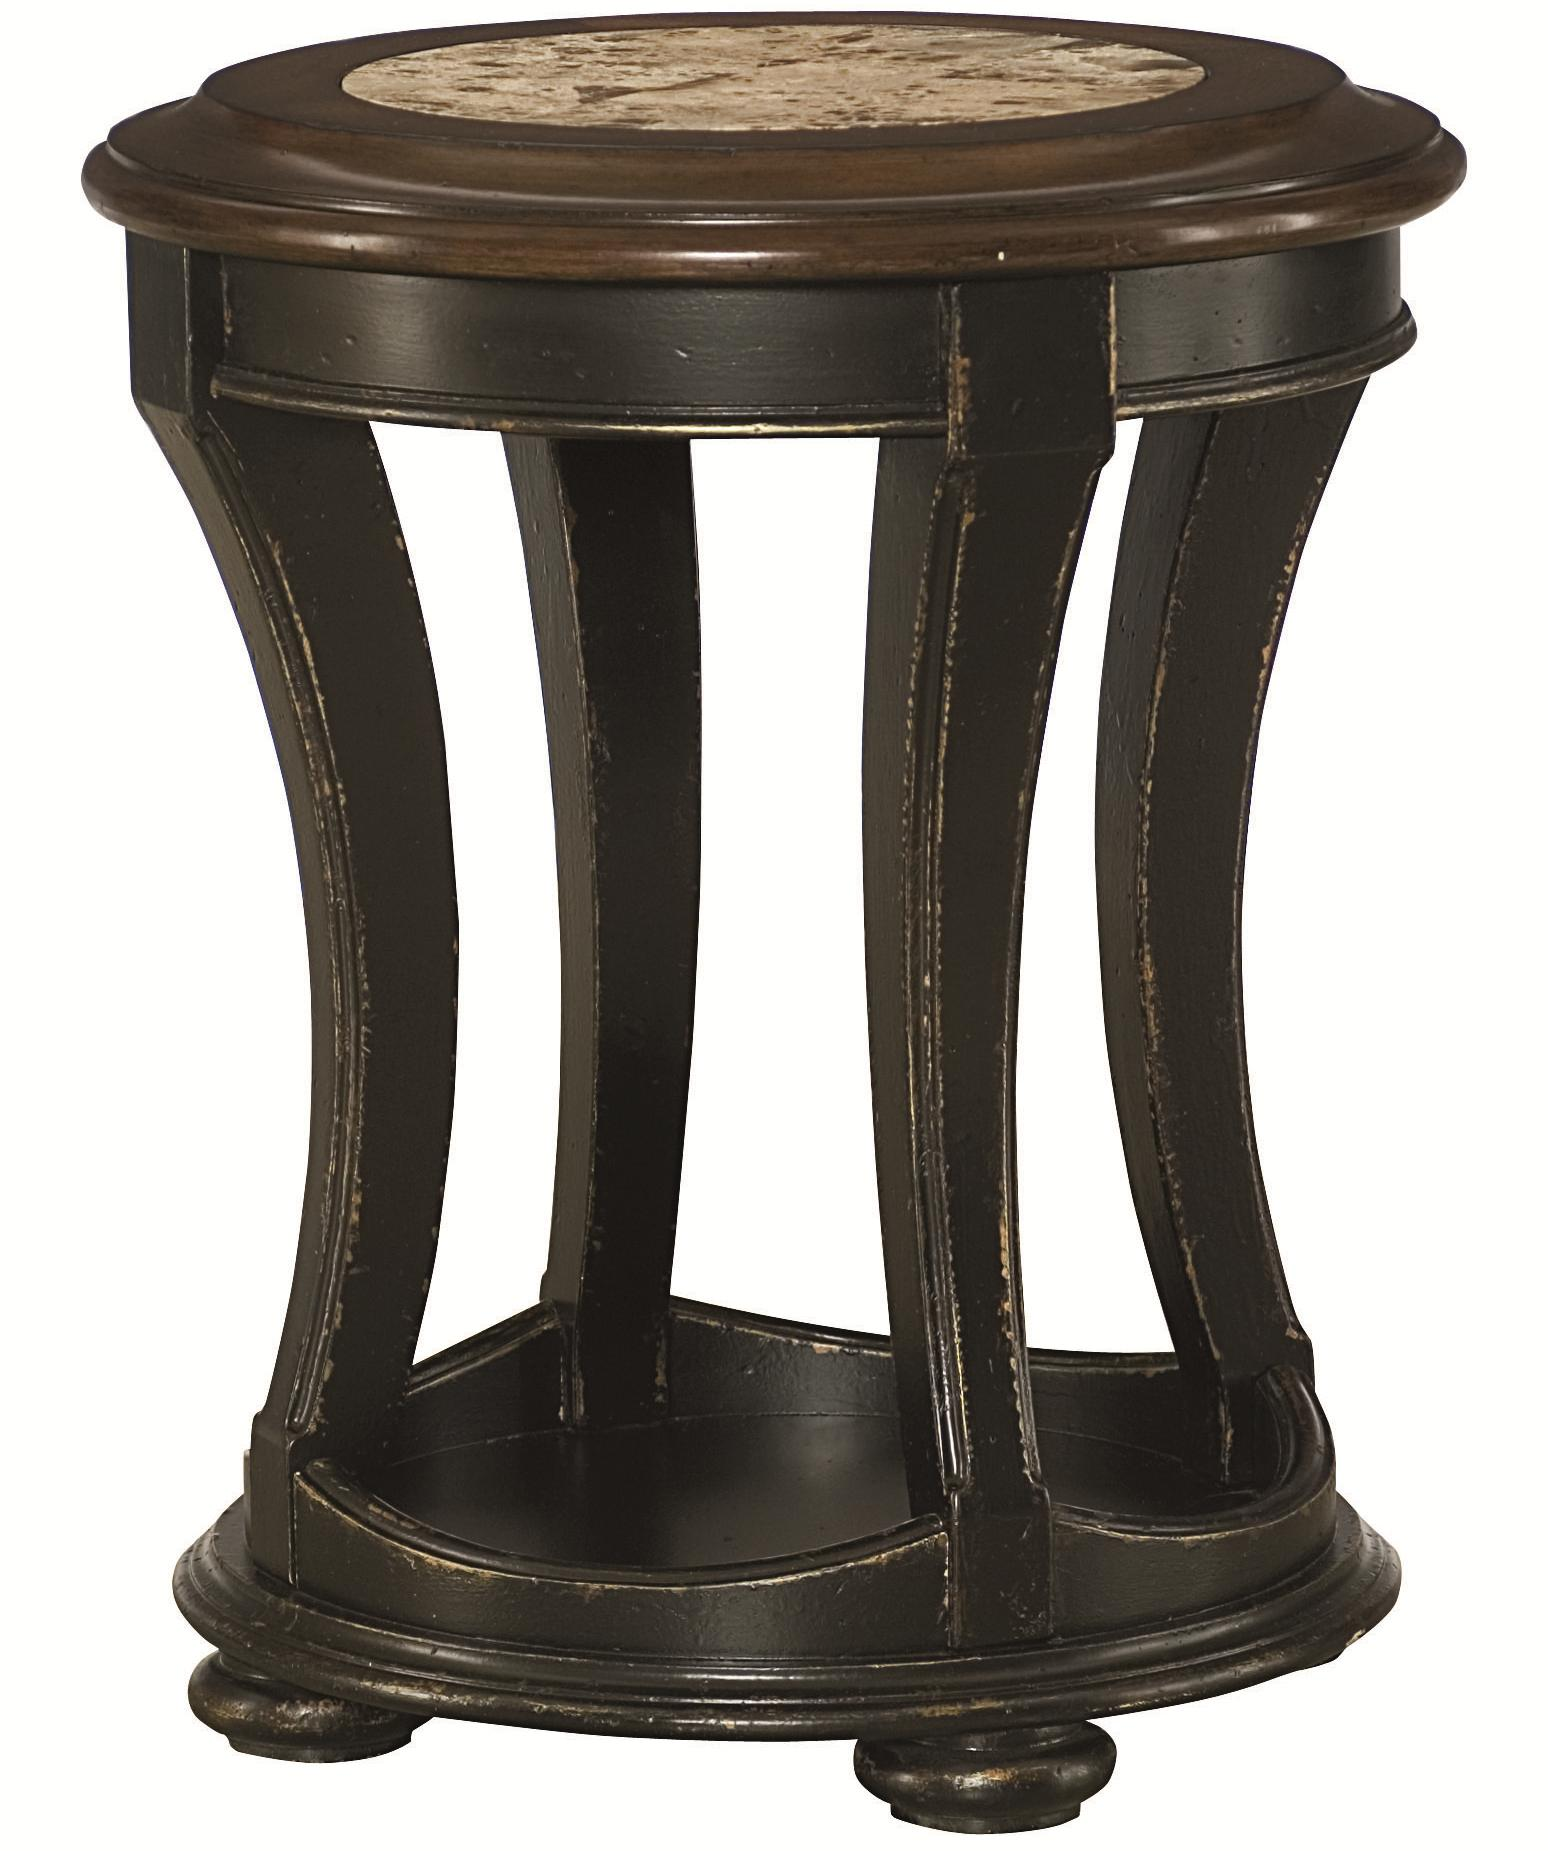 Round End Table With Top Stone Inlay